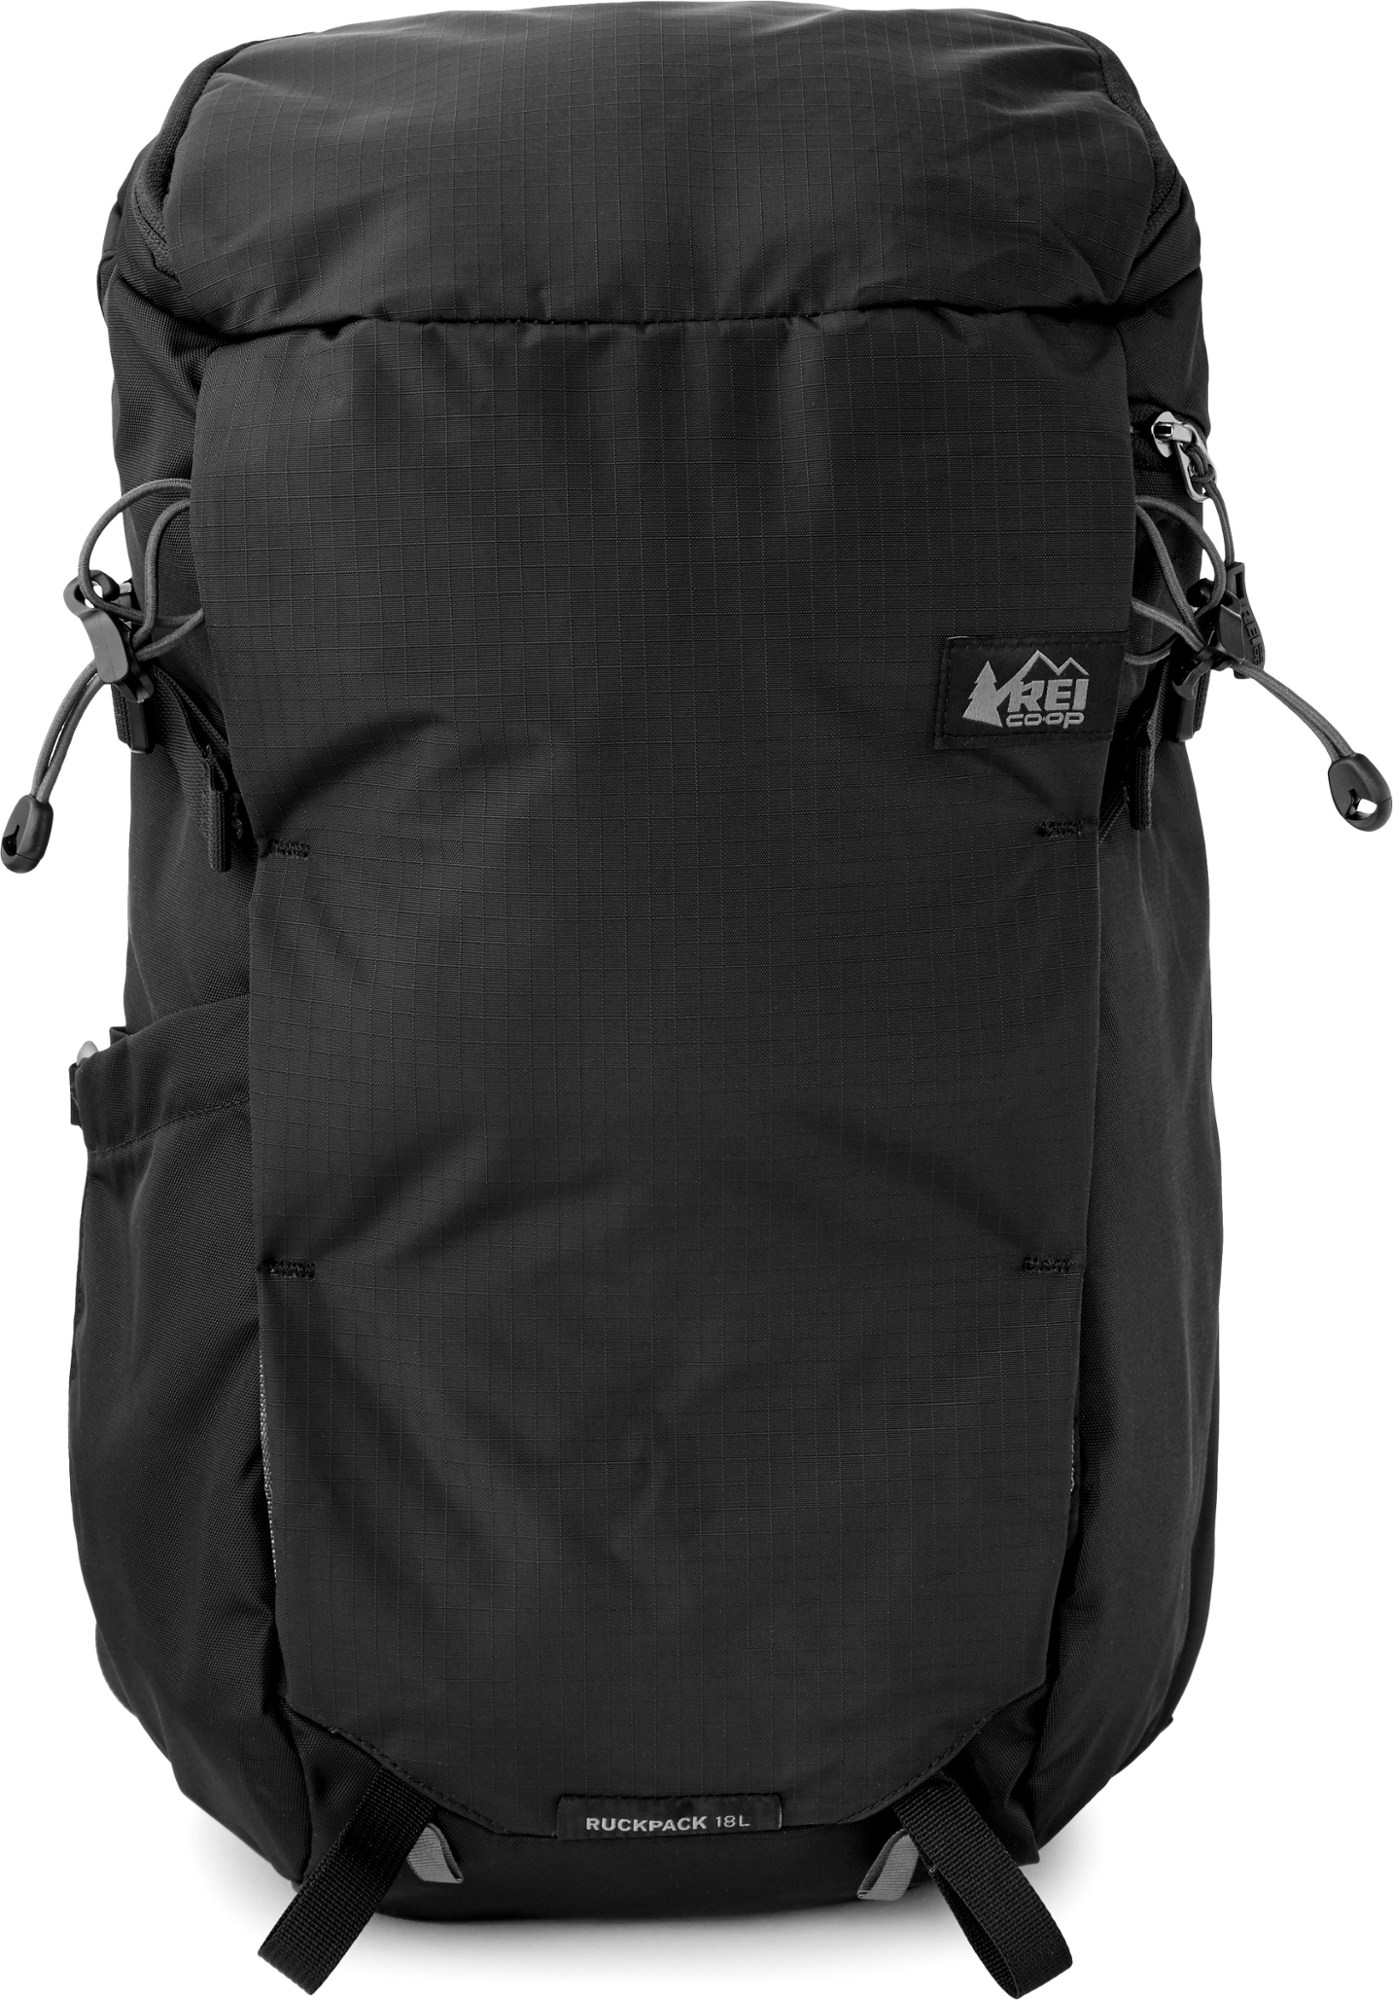 REI Co-op Ruckpack 18 Pack